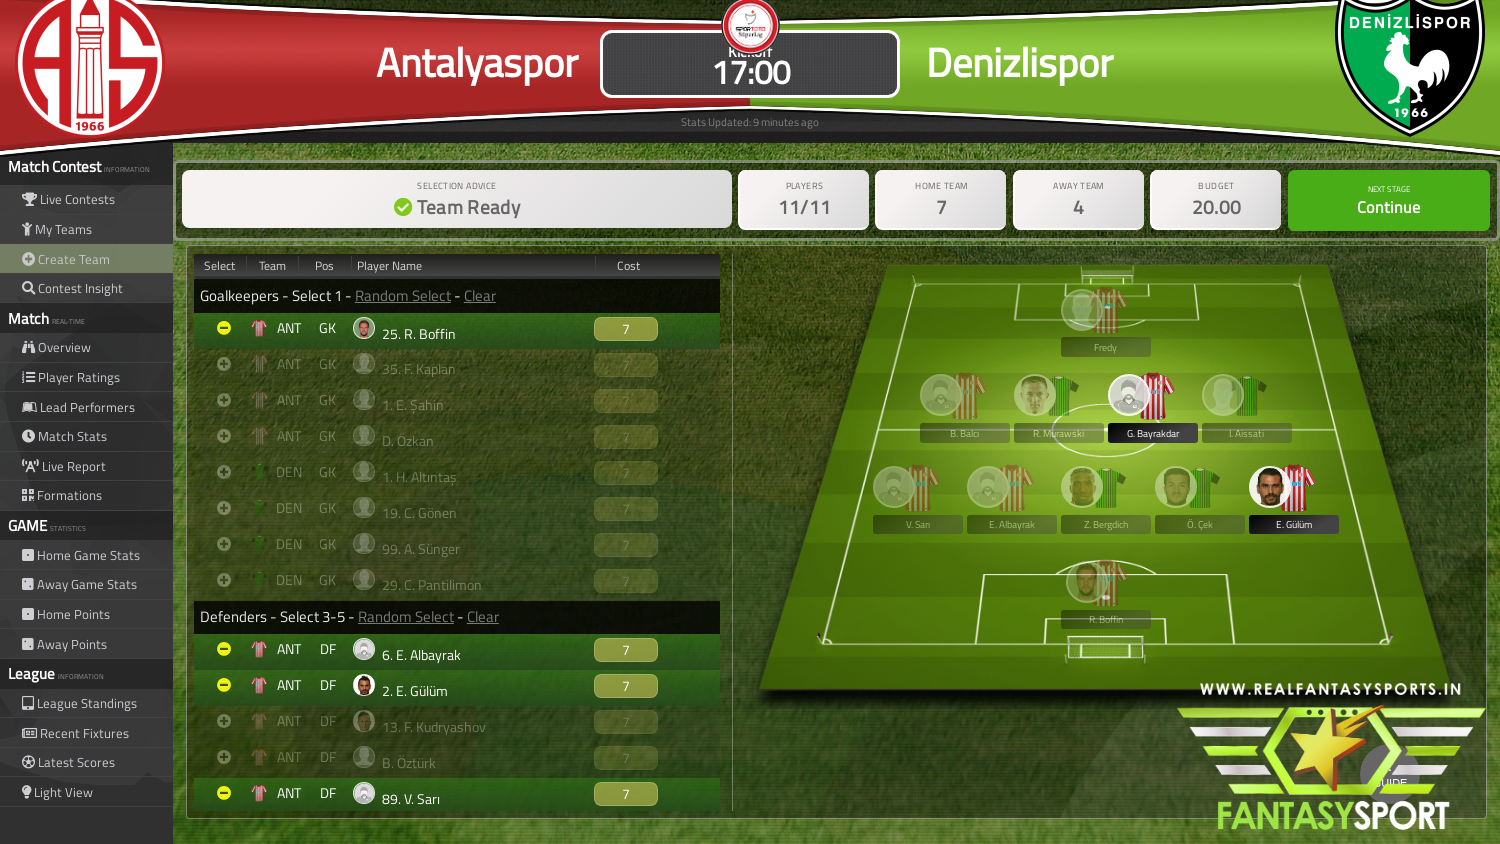 Antalyaspor vs Denizlispor game prediction (28th September 2020)